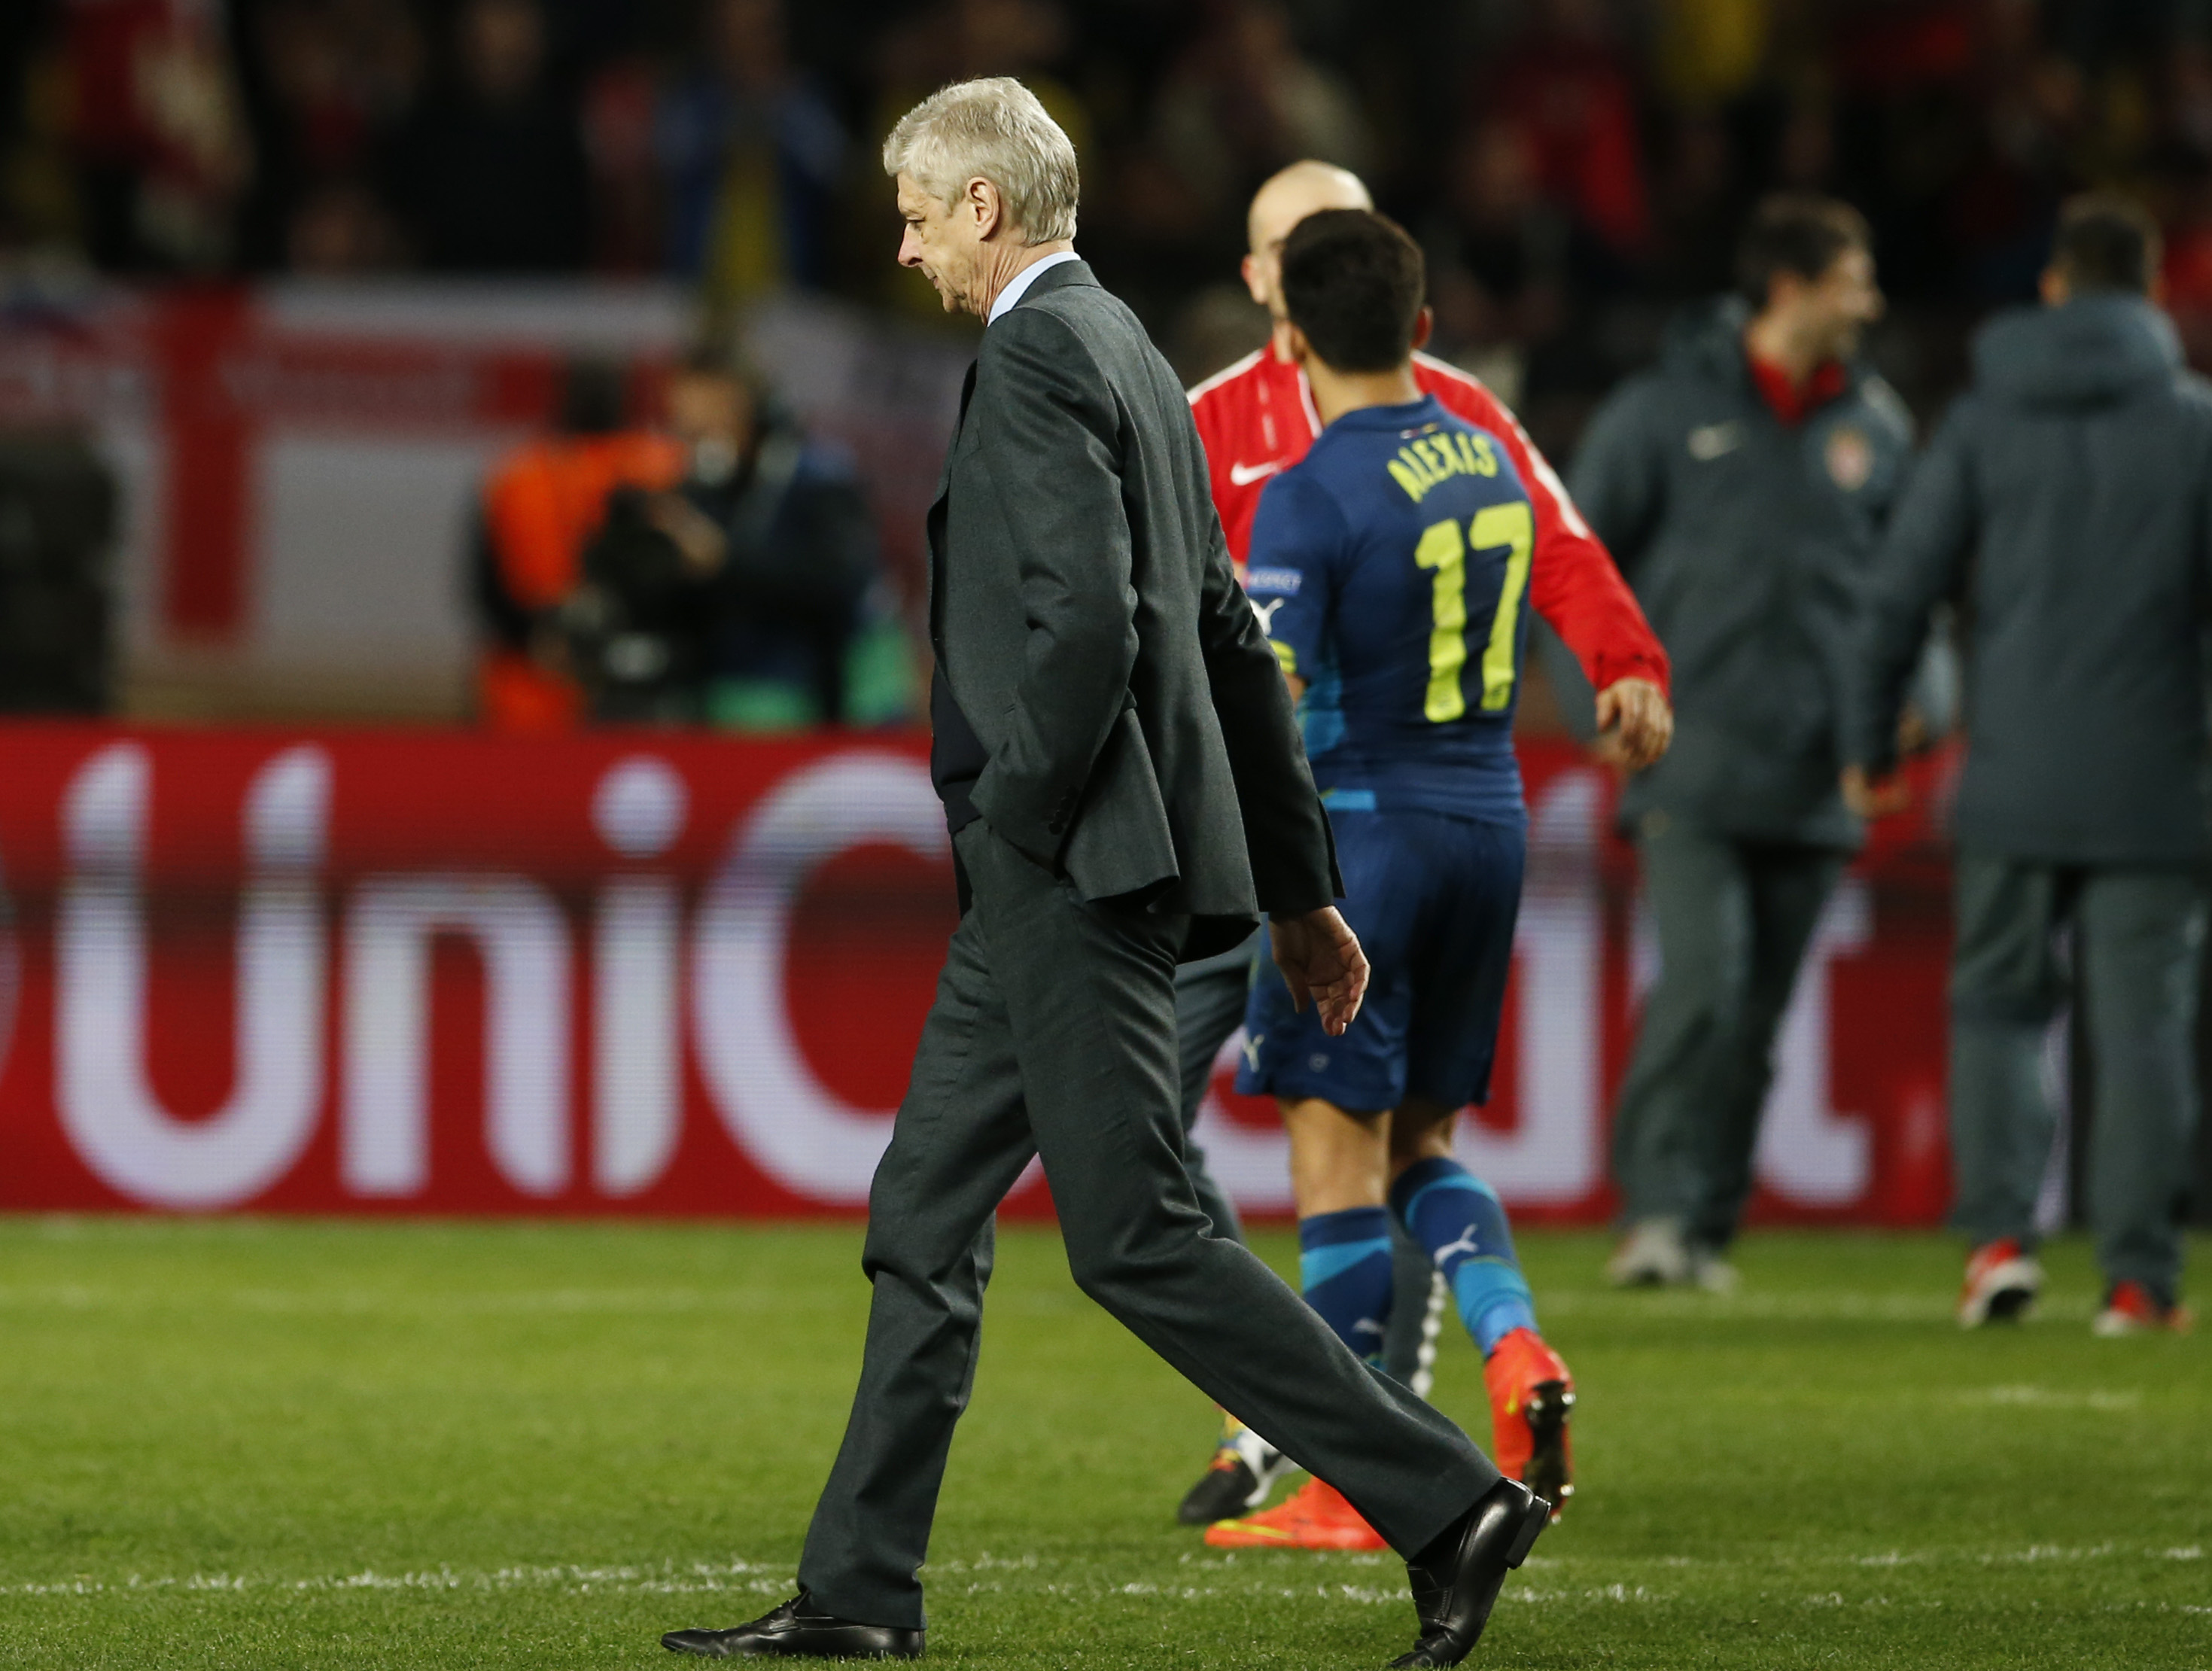 The Arsenal manager heads for the dressing room after latest Champions League exit.